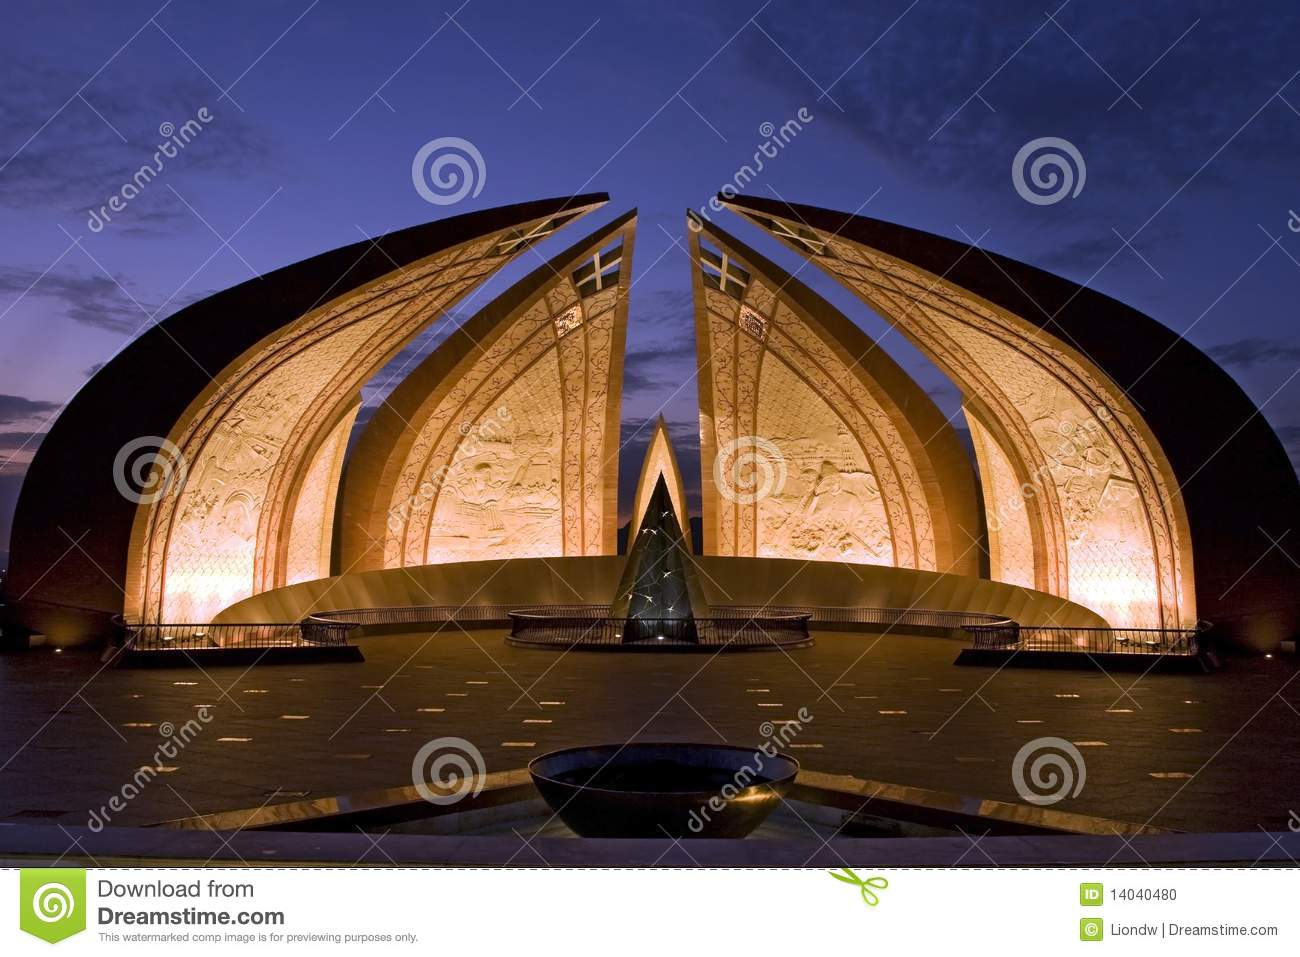 Nightview of Pakistan monument in Islamabad